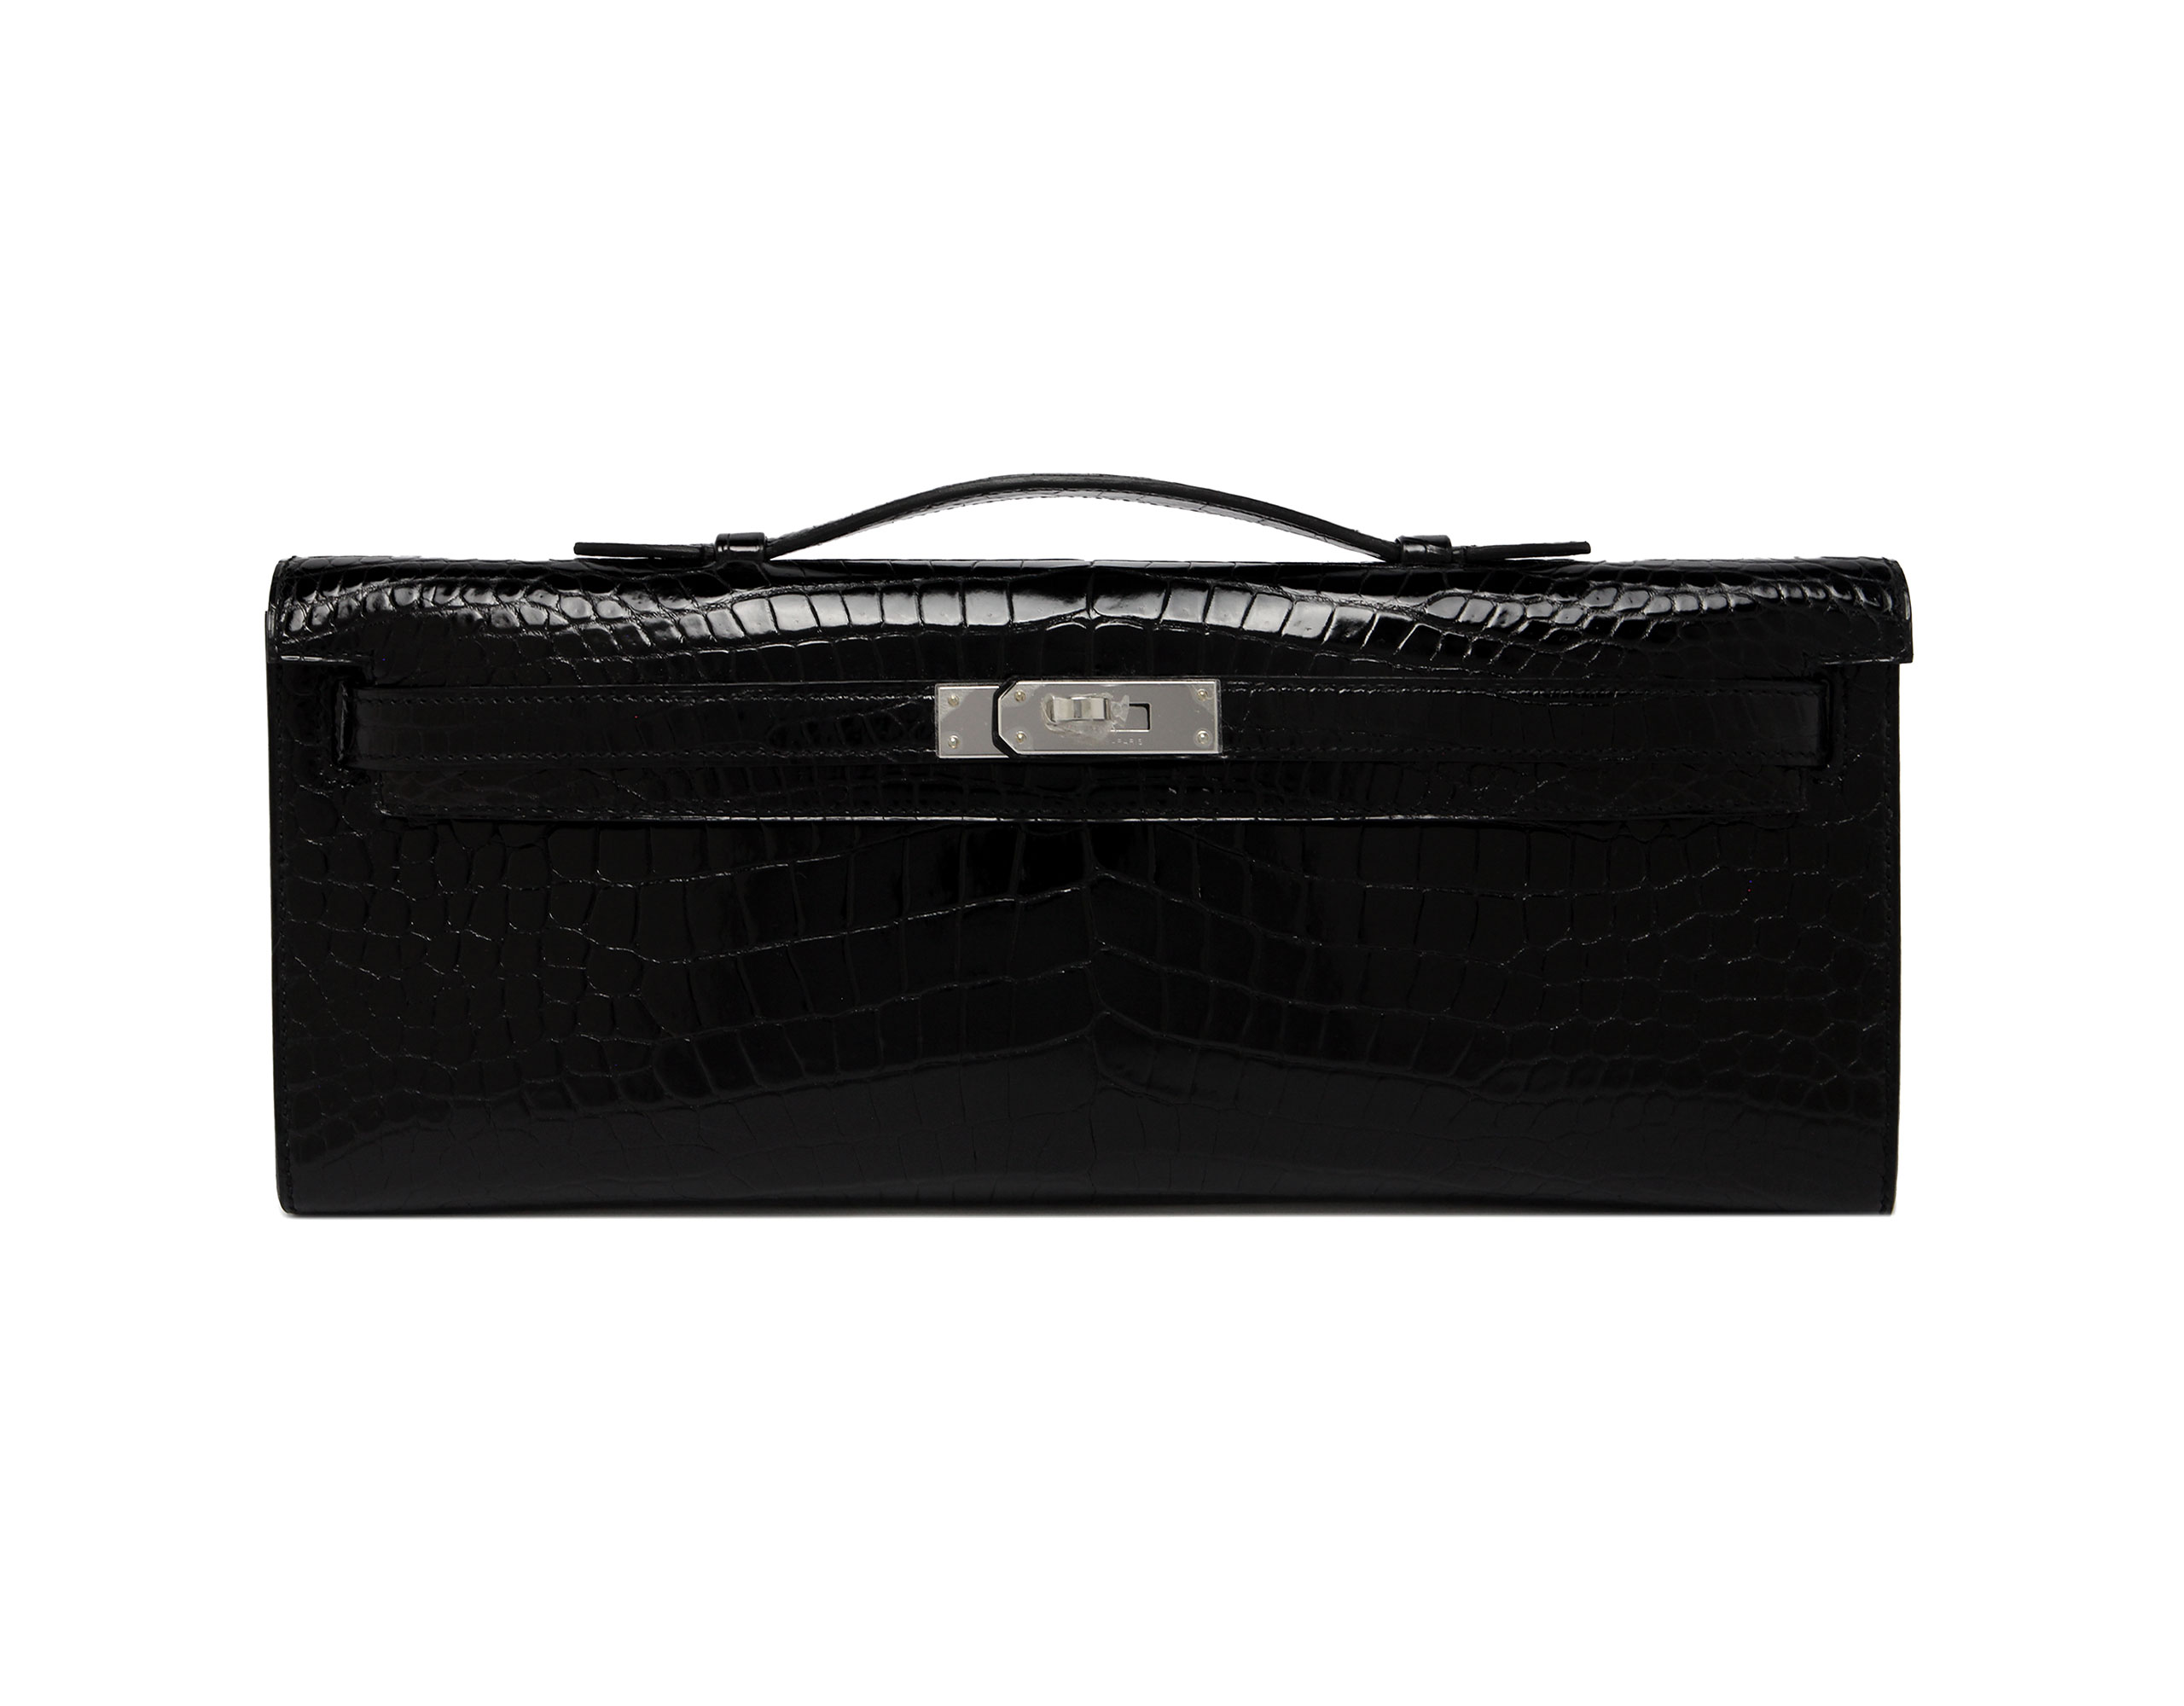 2f1a22cb57 hermes-kelly-cut-black-shiny-croc-31cm-phw-